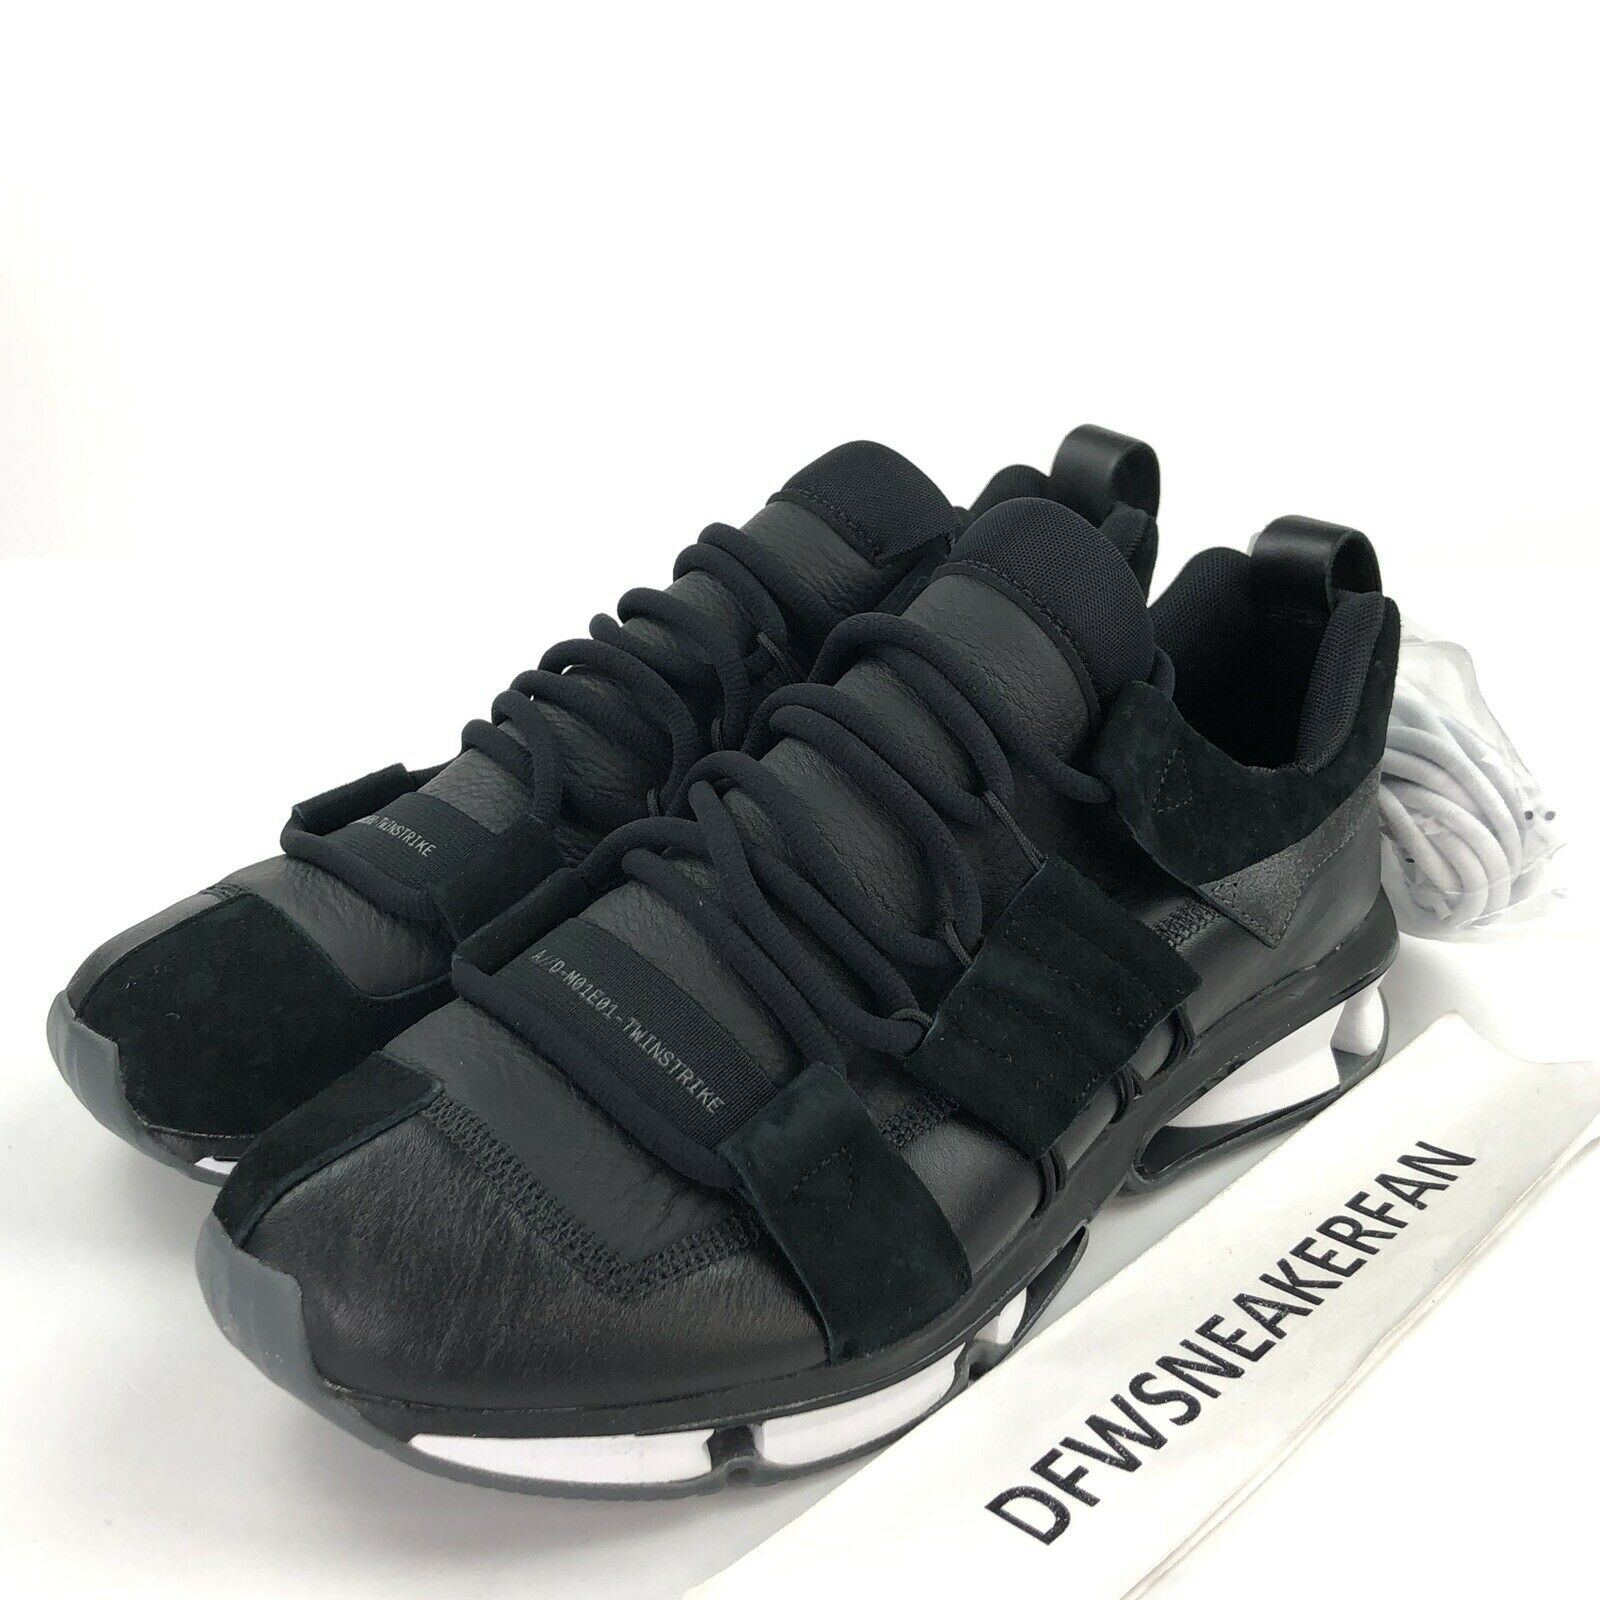 Adidas Twinstrike Men's 11.5 ADV Stretch Leather Sneakers Black B28015 New shoes